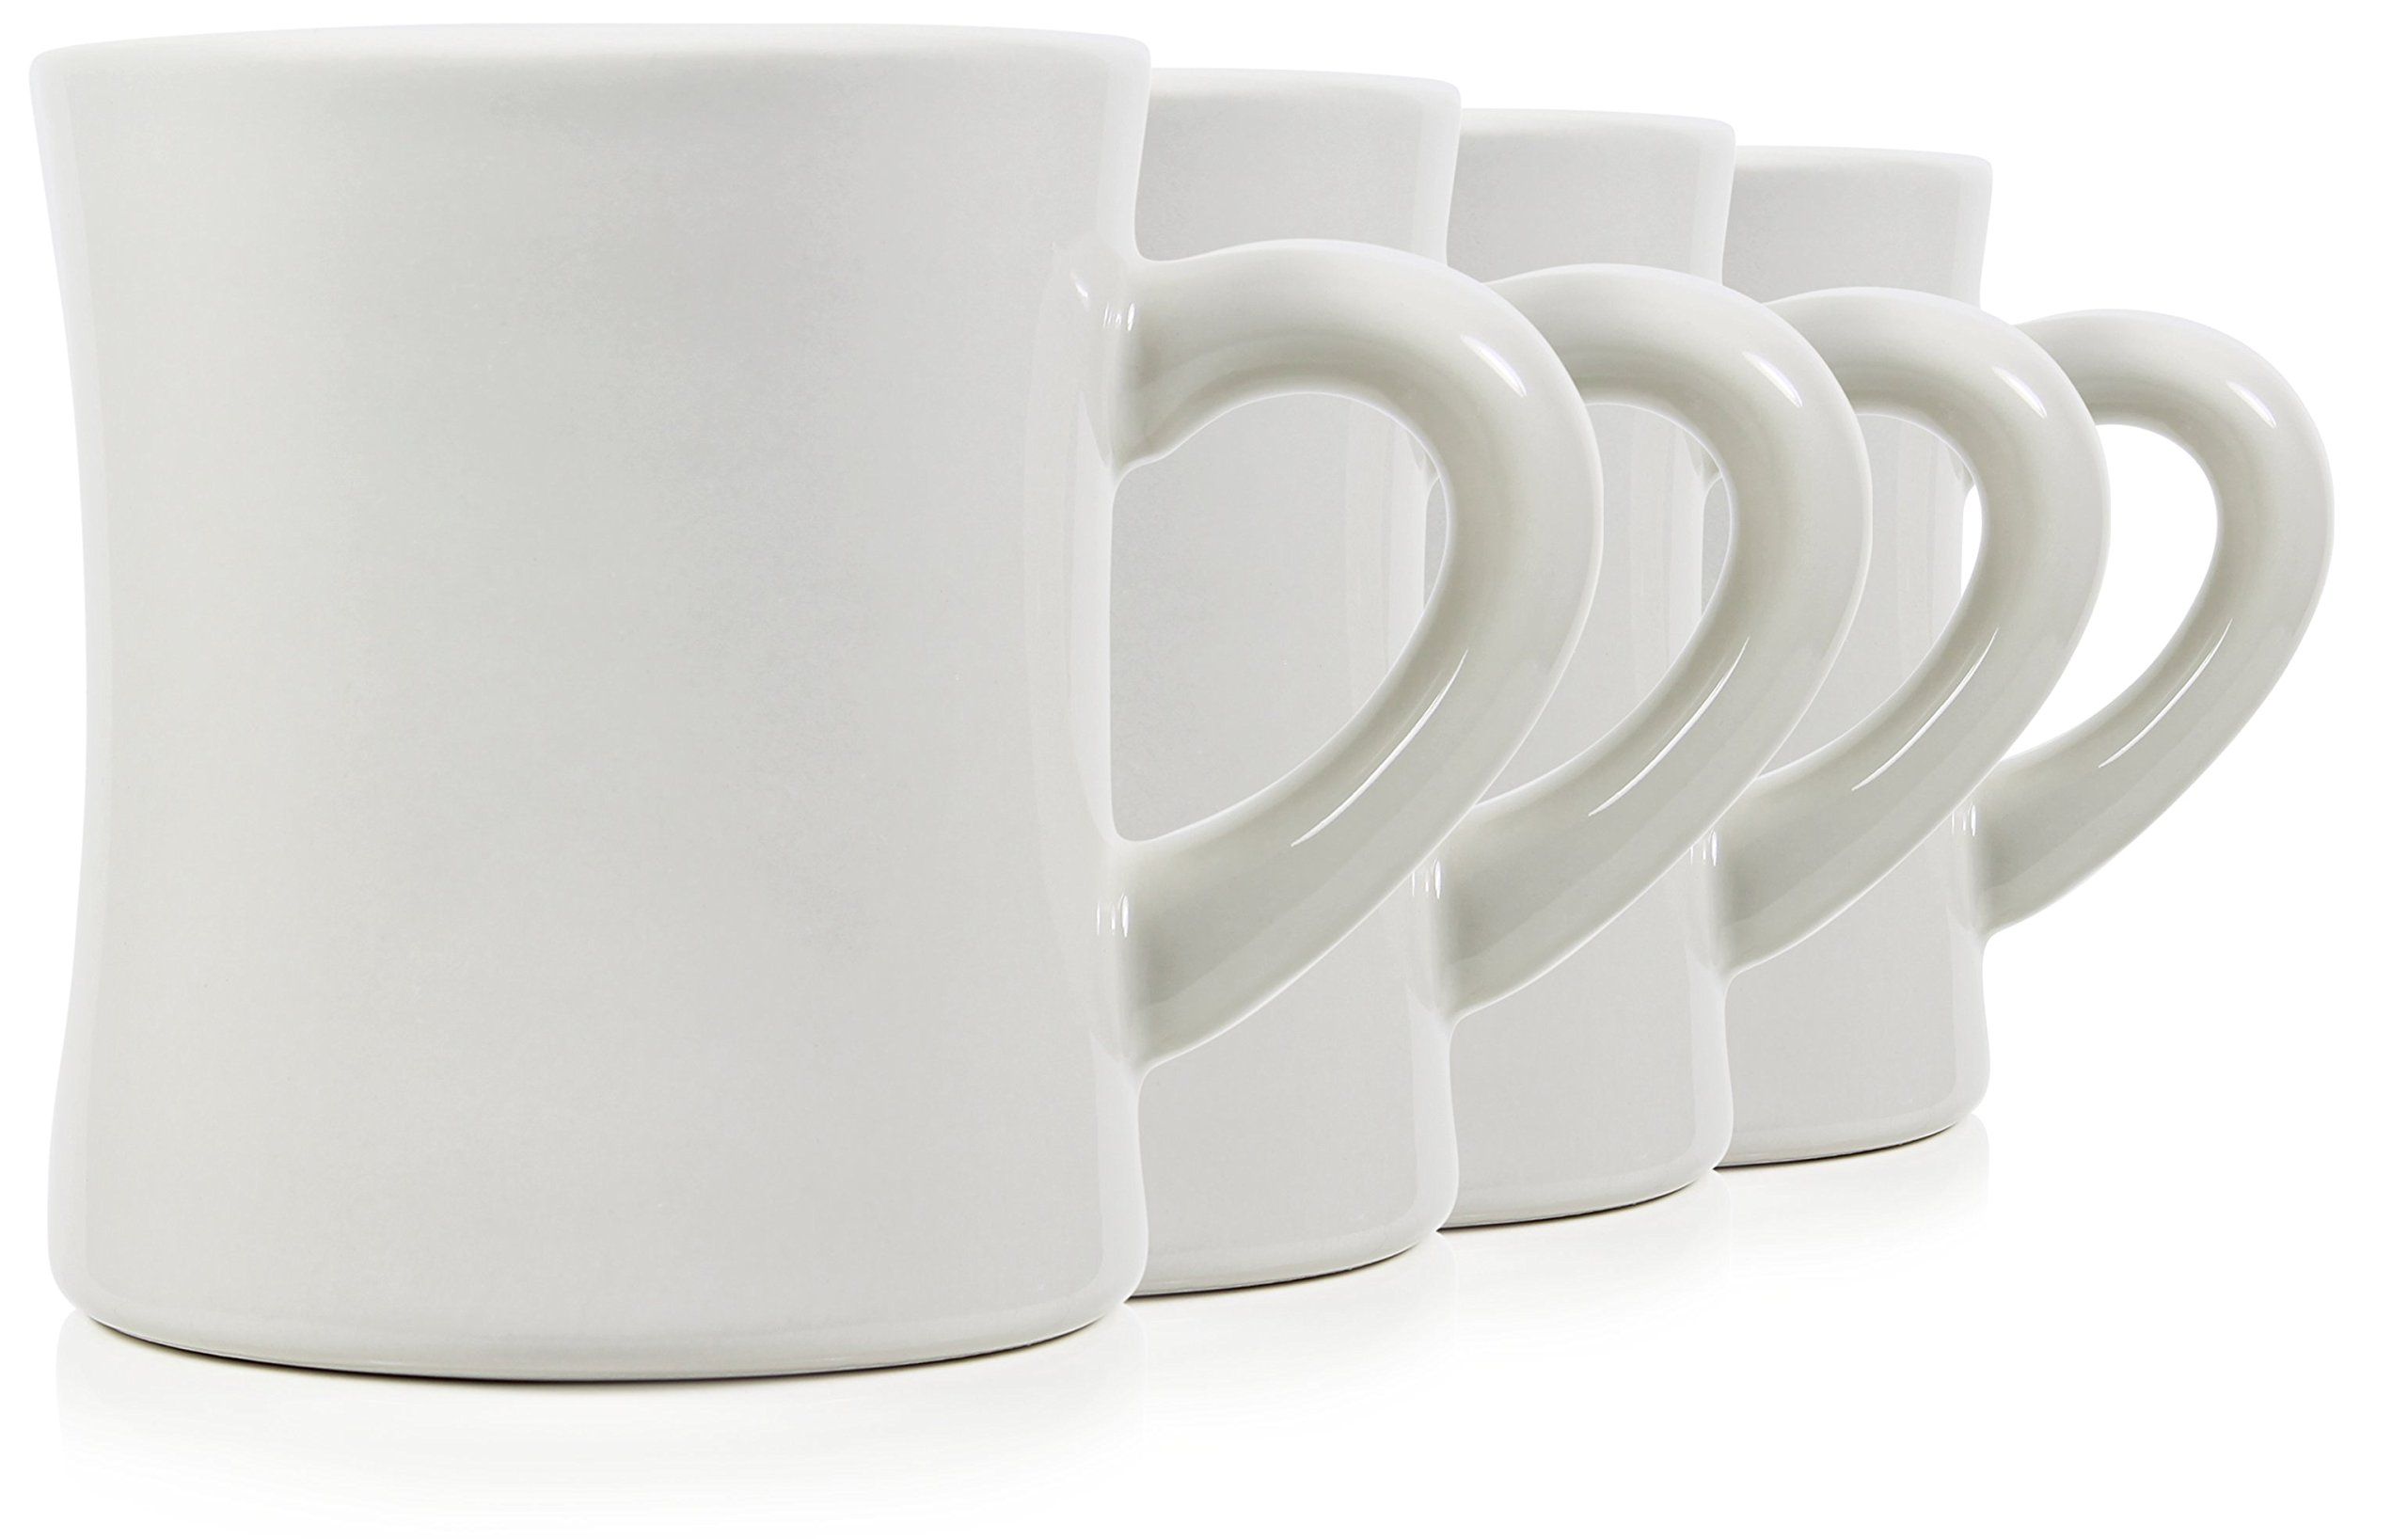 Serami 11oz White Diner Mugs for Coffee or Tea. Very Heavy Duty and Ceramic Construction, Set of 4